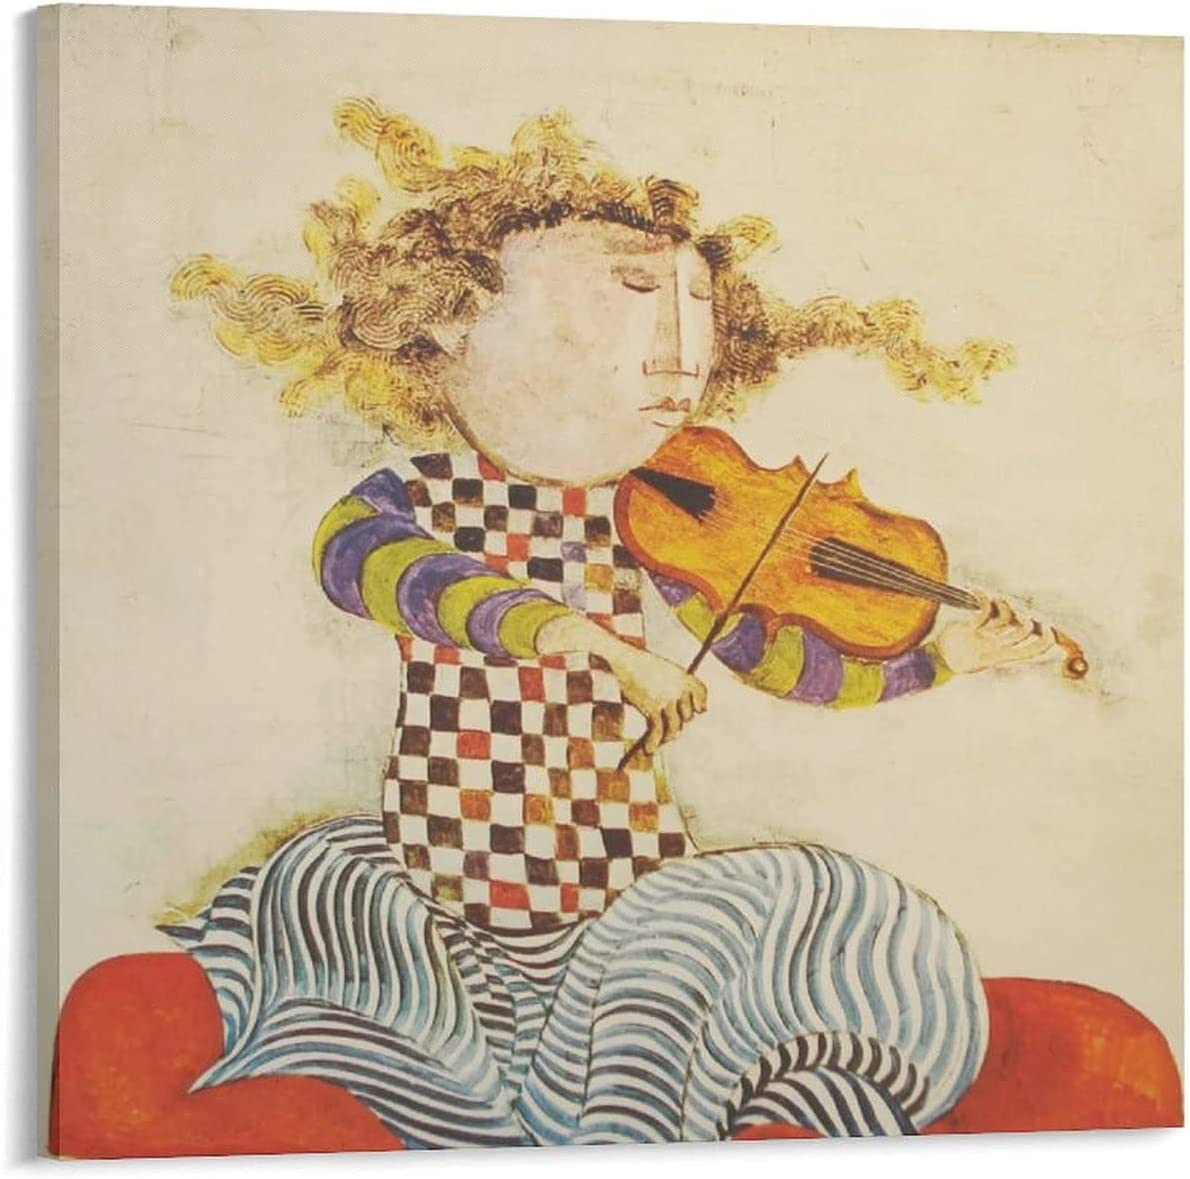 NEW before selling ☆ Artist Graciela Rodo Boulanger Paintings De Le Gifts Violon Poster for